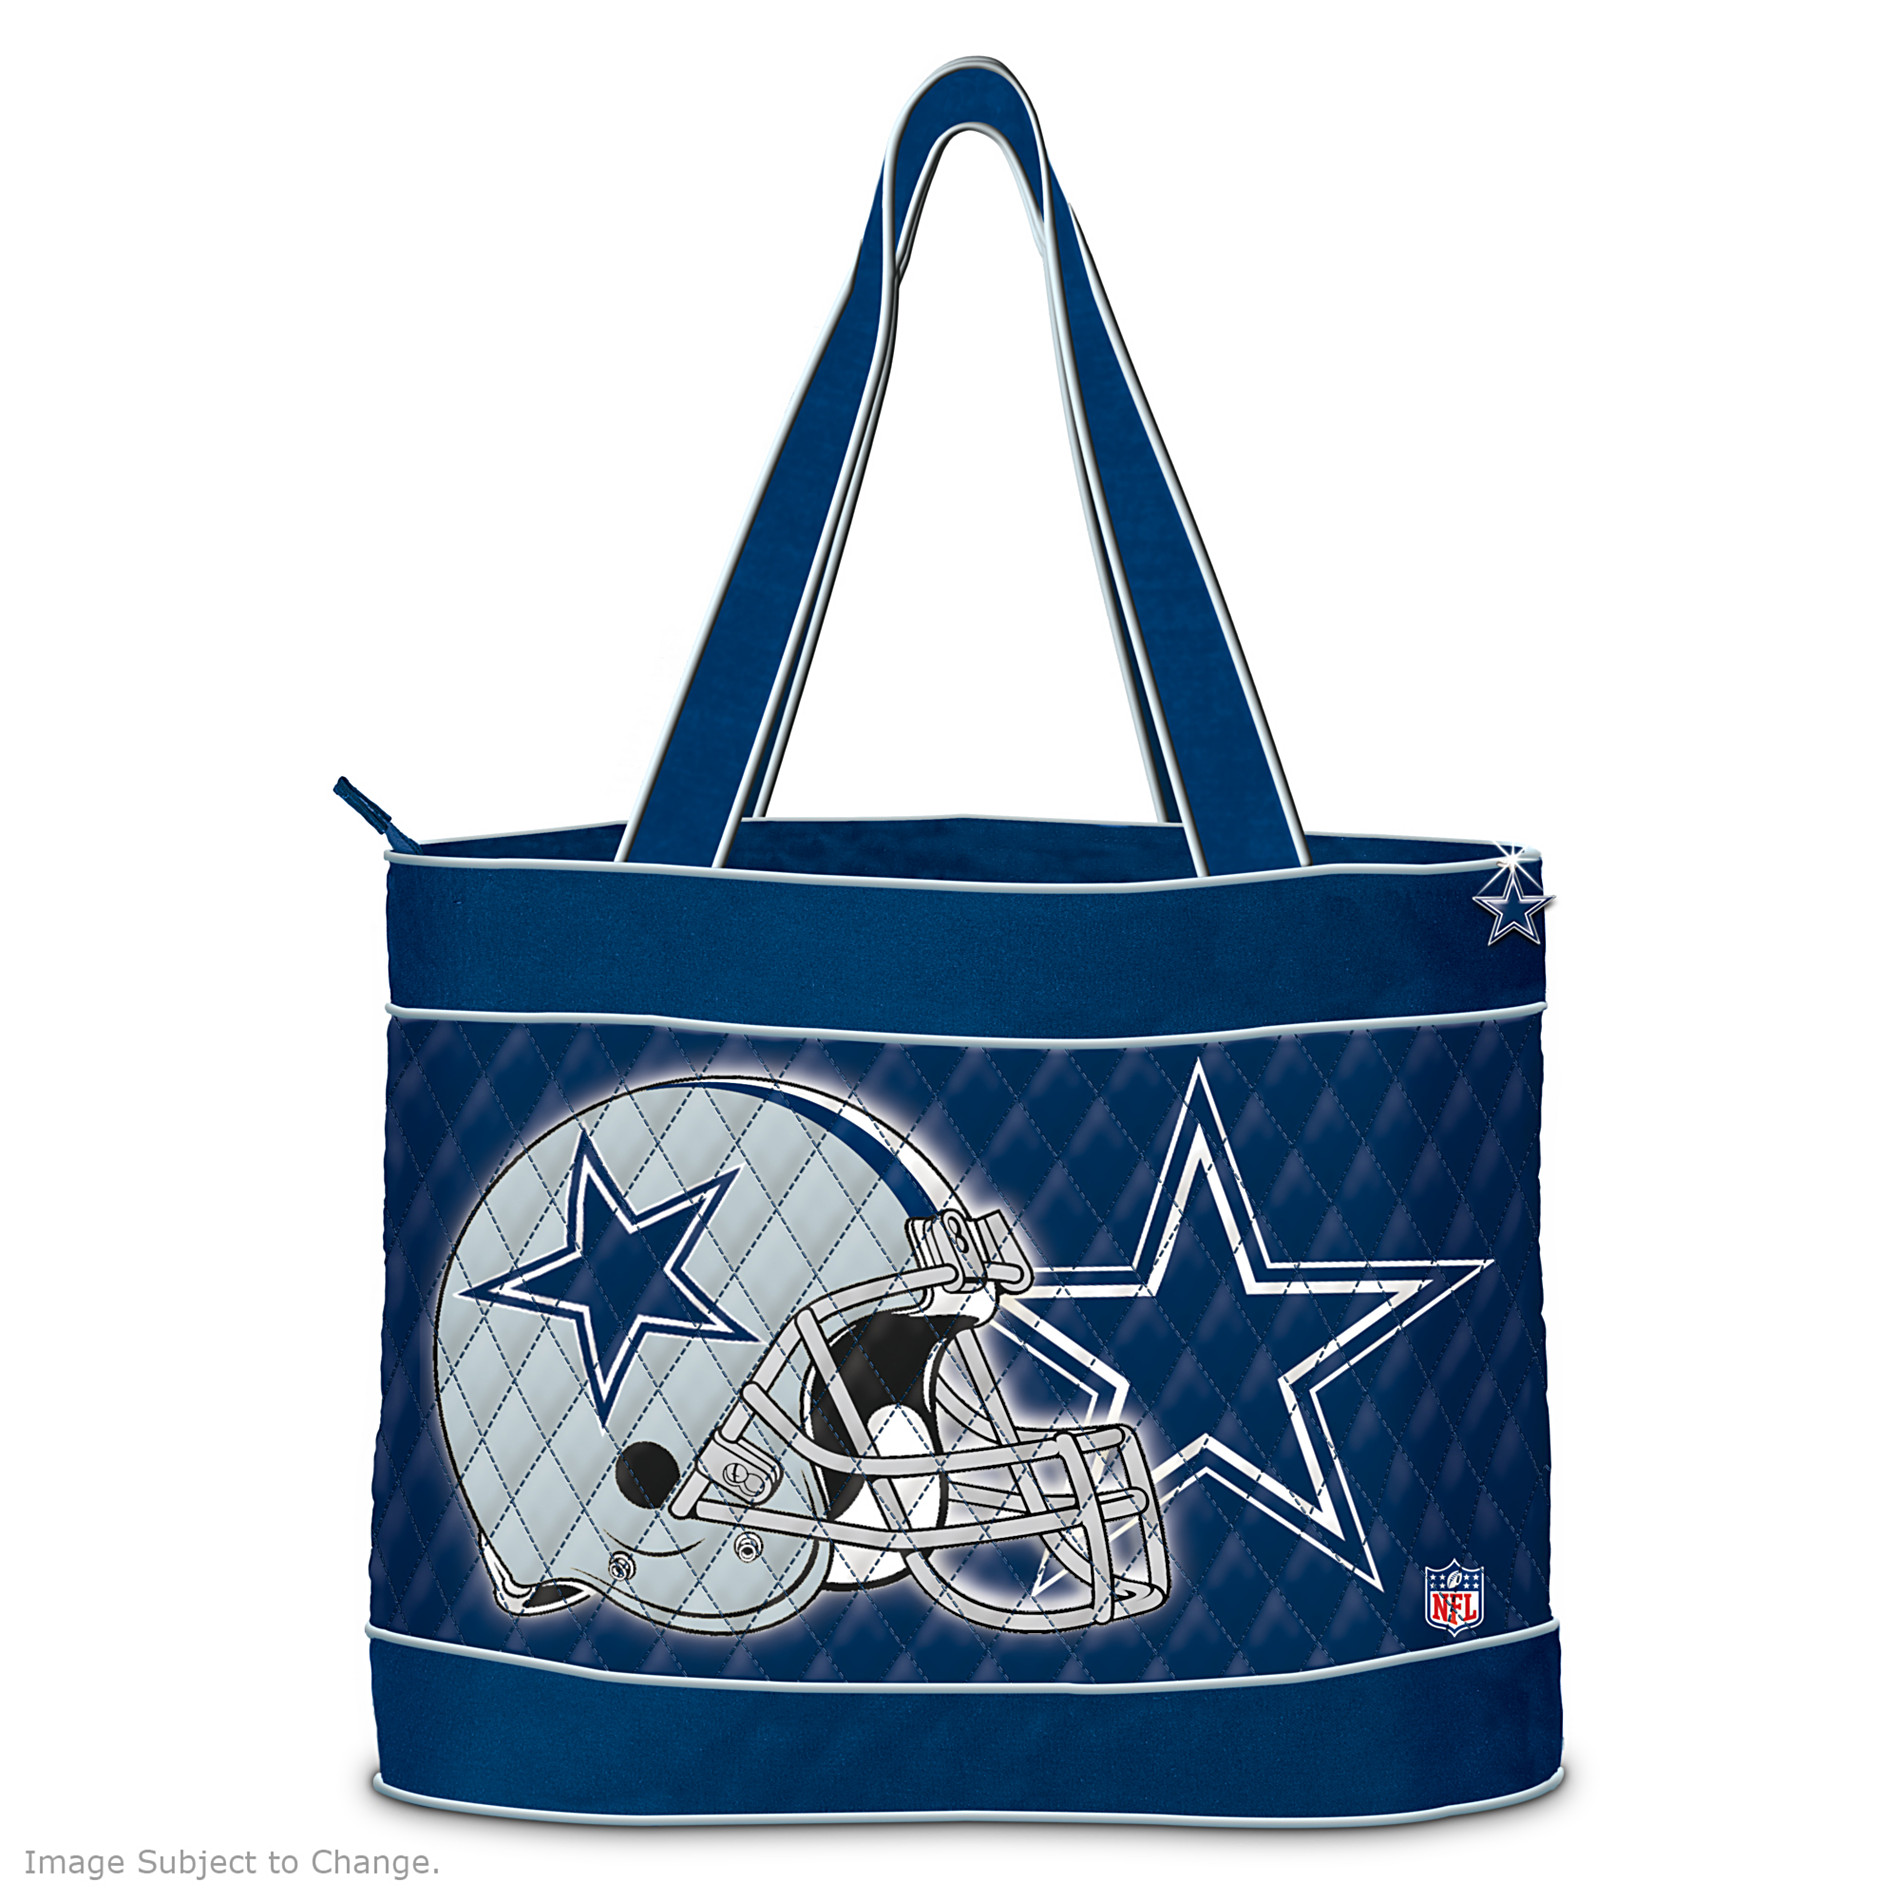 The Bradford Exchange NFL Dallas Cowboys Quilted Tote Bag at Sears.com